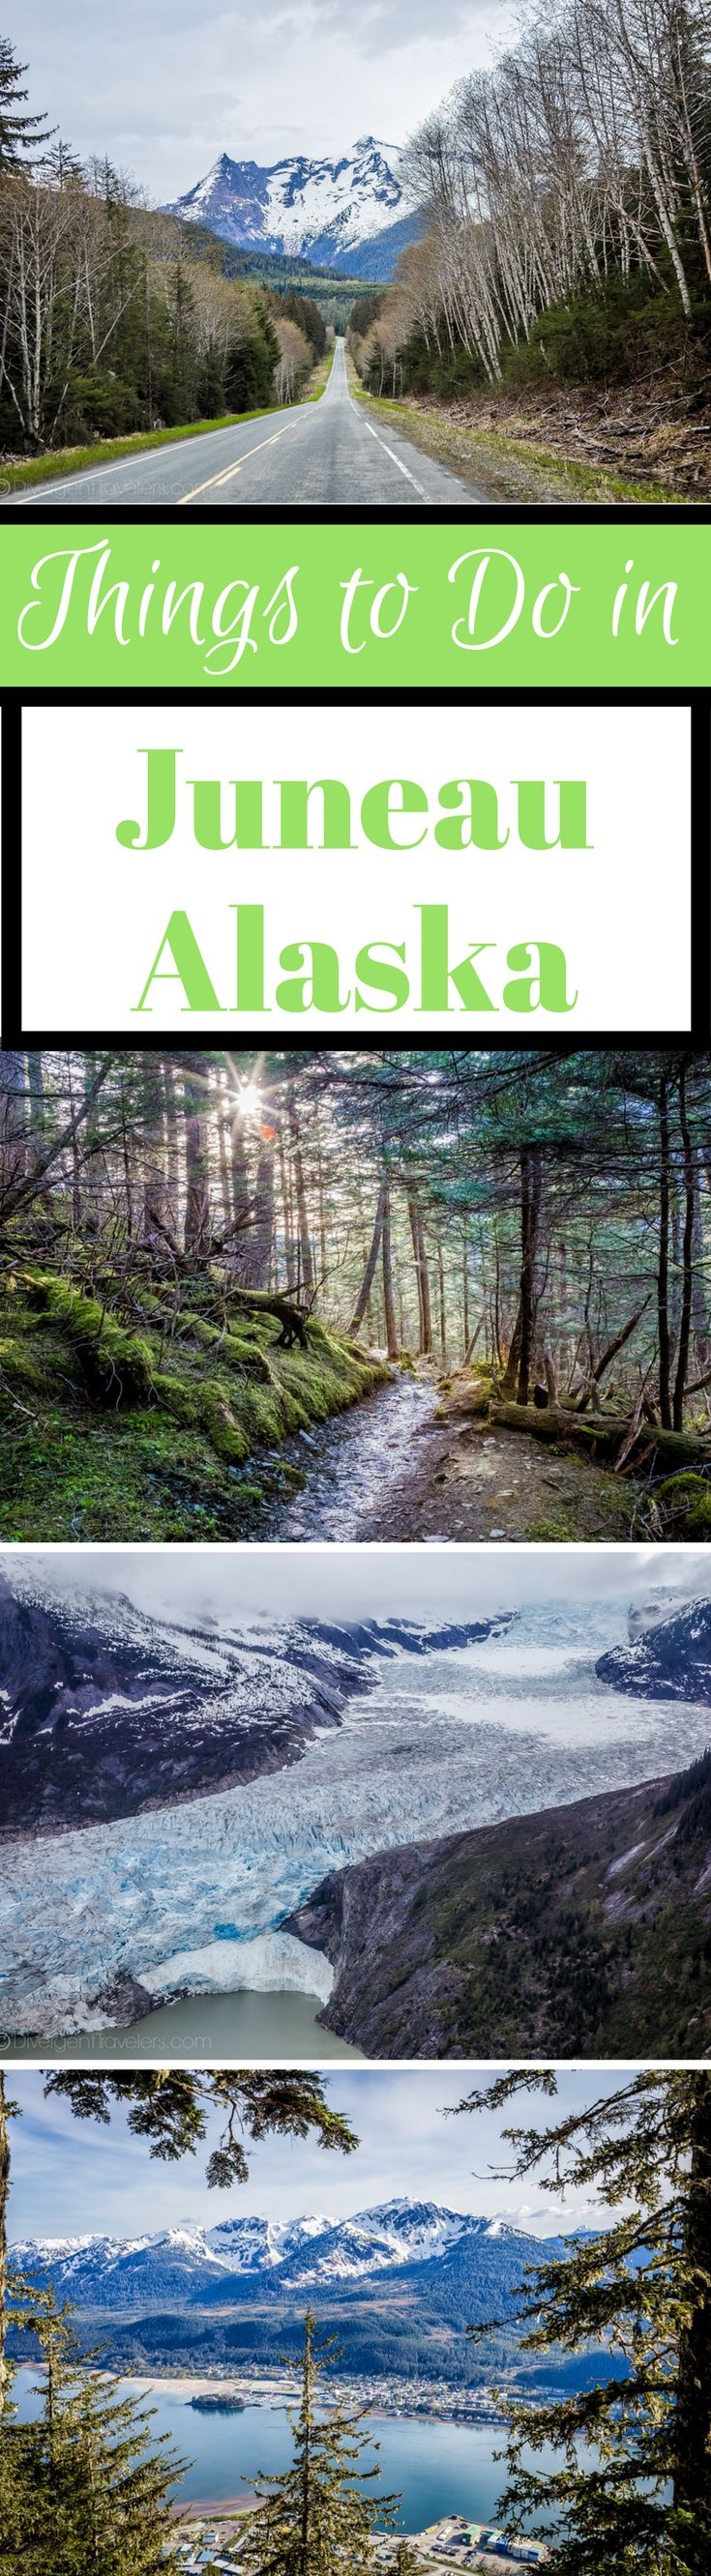 Ultimate Guide of Things to Do in Juneau, Alaska.  Our time in Juneau culminated in 5 action packed days of adventure, exploring and eating our way right into the fan club of the city. Shocked to learn that most people only spend the one day they have on a cruise ship in Juneau, we've made it our mission to convince you that you should fly in early for your cruise and take a look around. You won't regret it. #Alaska #Travel #Juneau